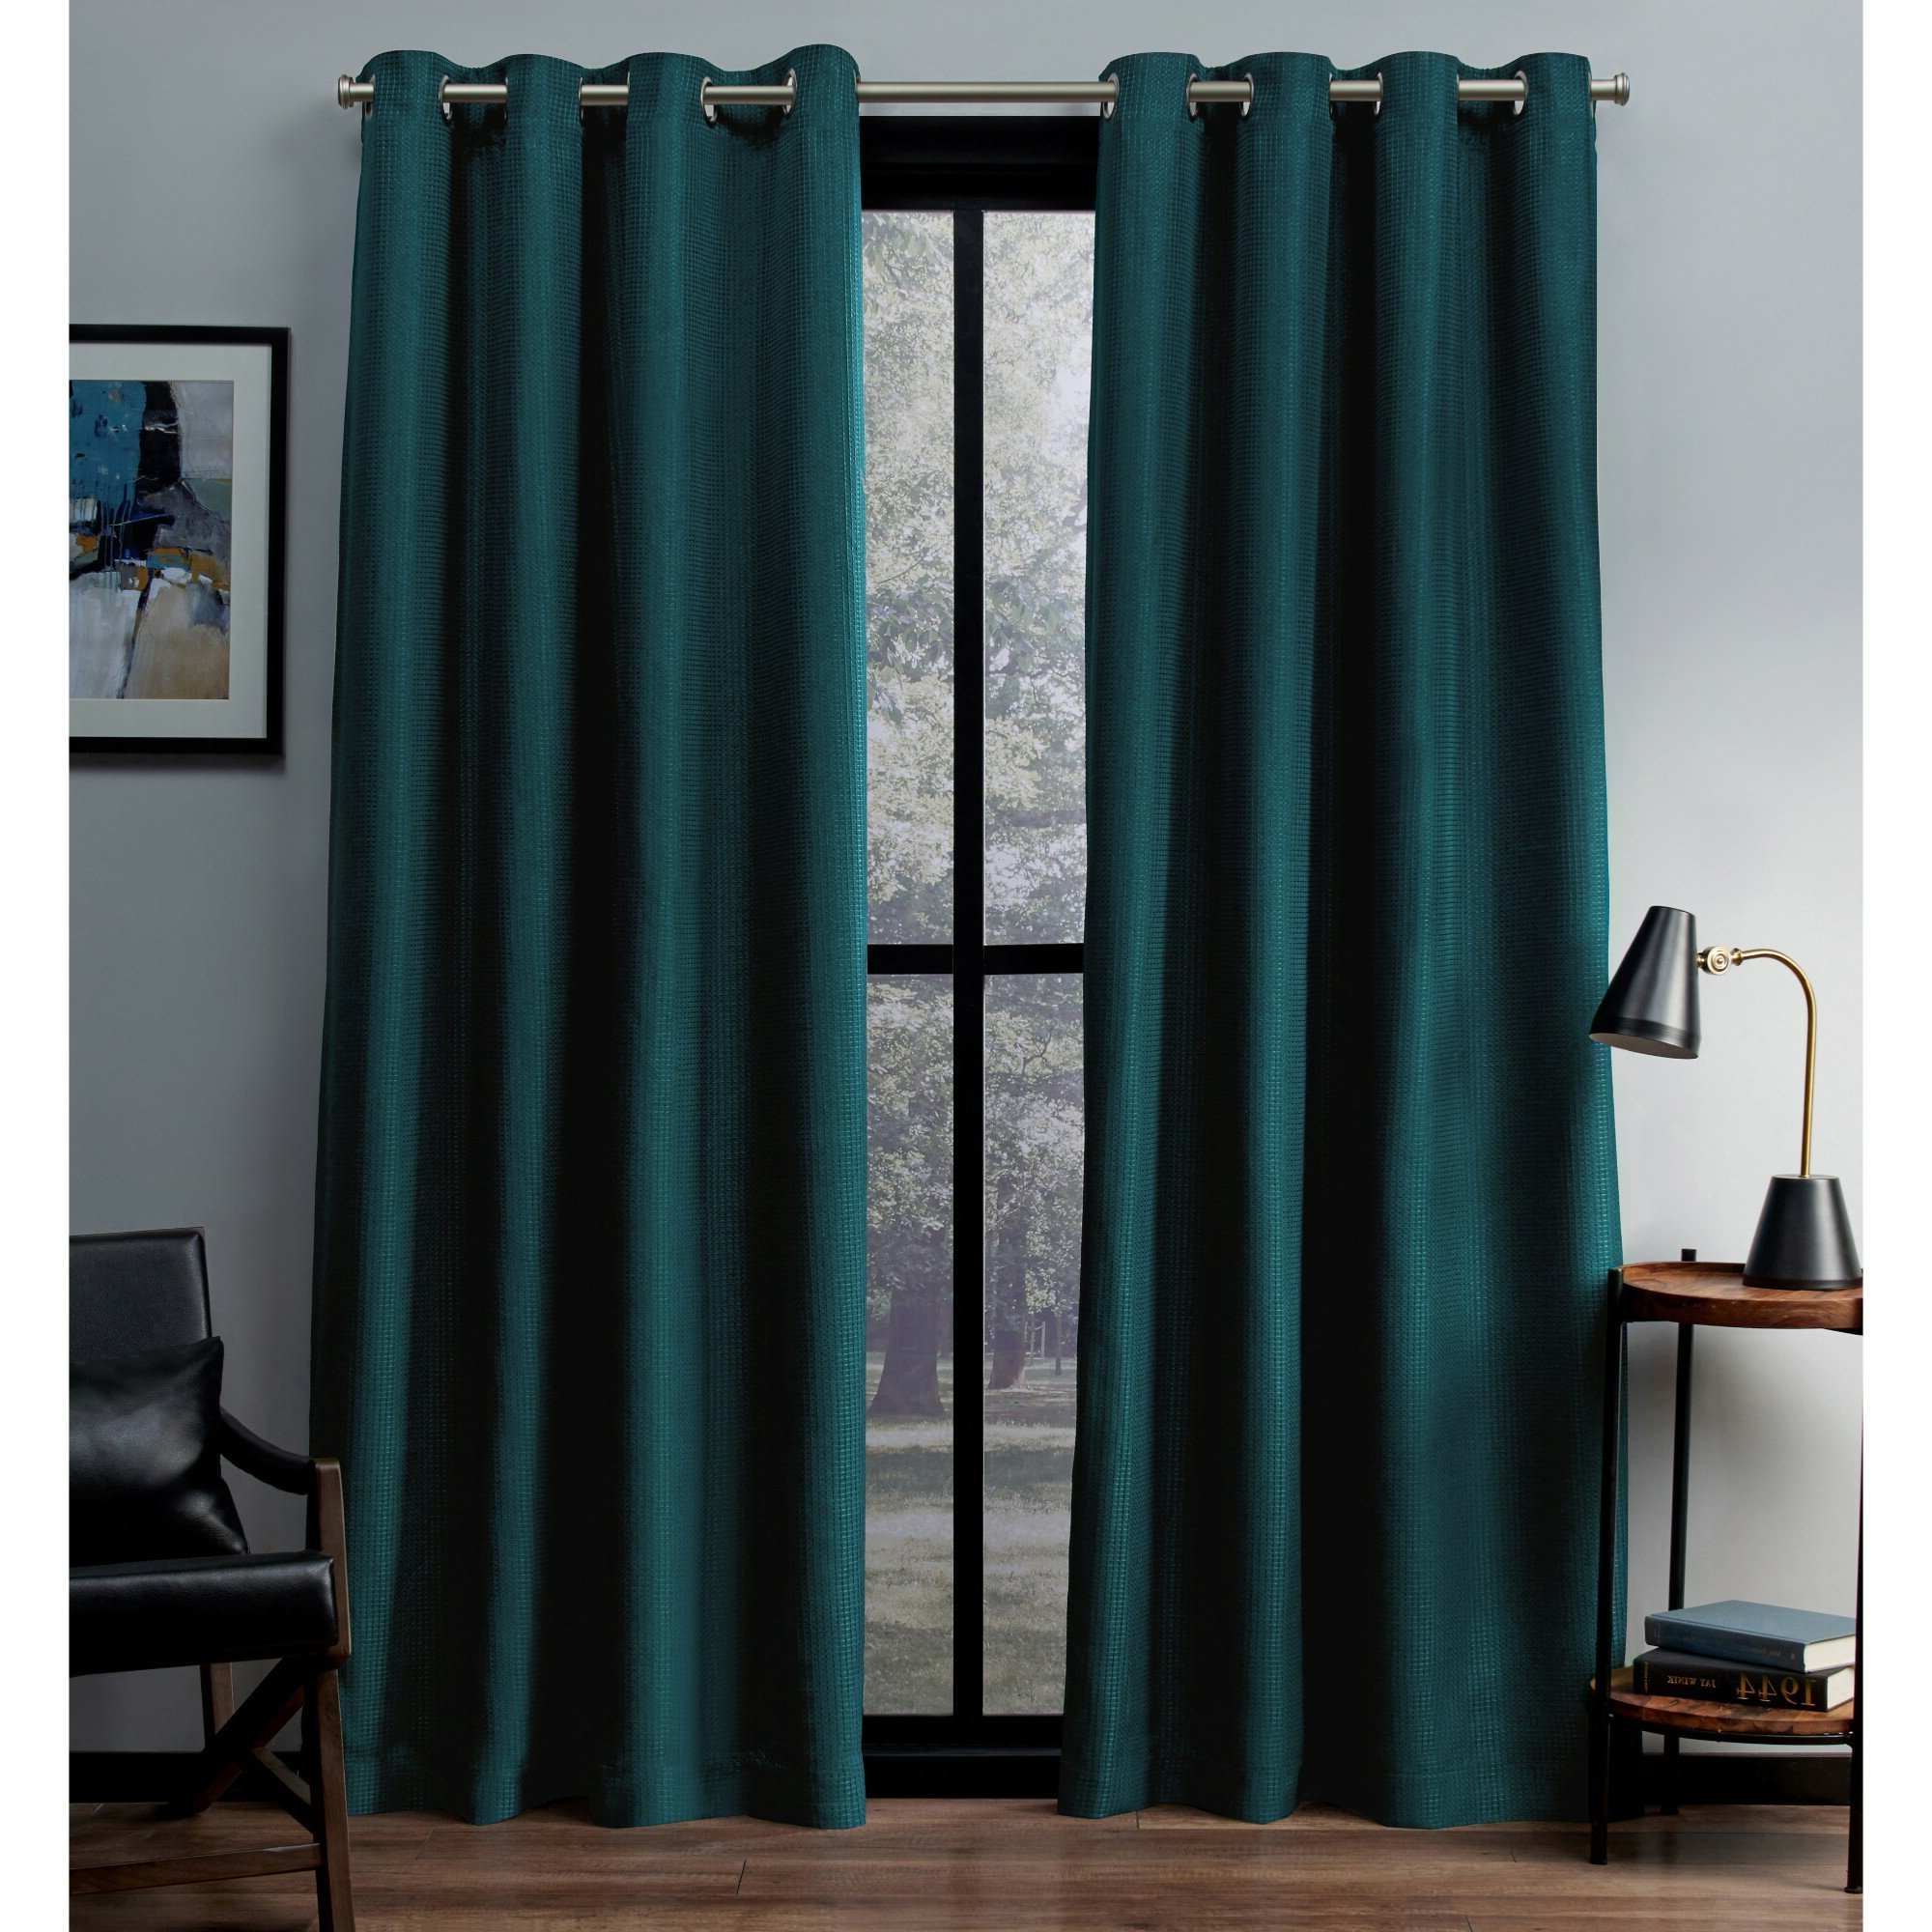 Latest Antique Silver Grommet Top Thermal Insulated Blackout Curtain Panel Pairs With Regard To Ivy Bronx Dayse Solid Max Blackout Thermal Grommet Curtain (View 15 of 20)